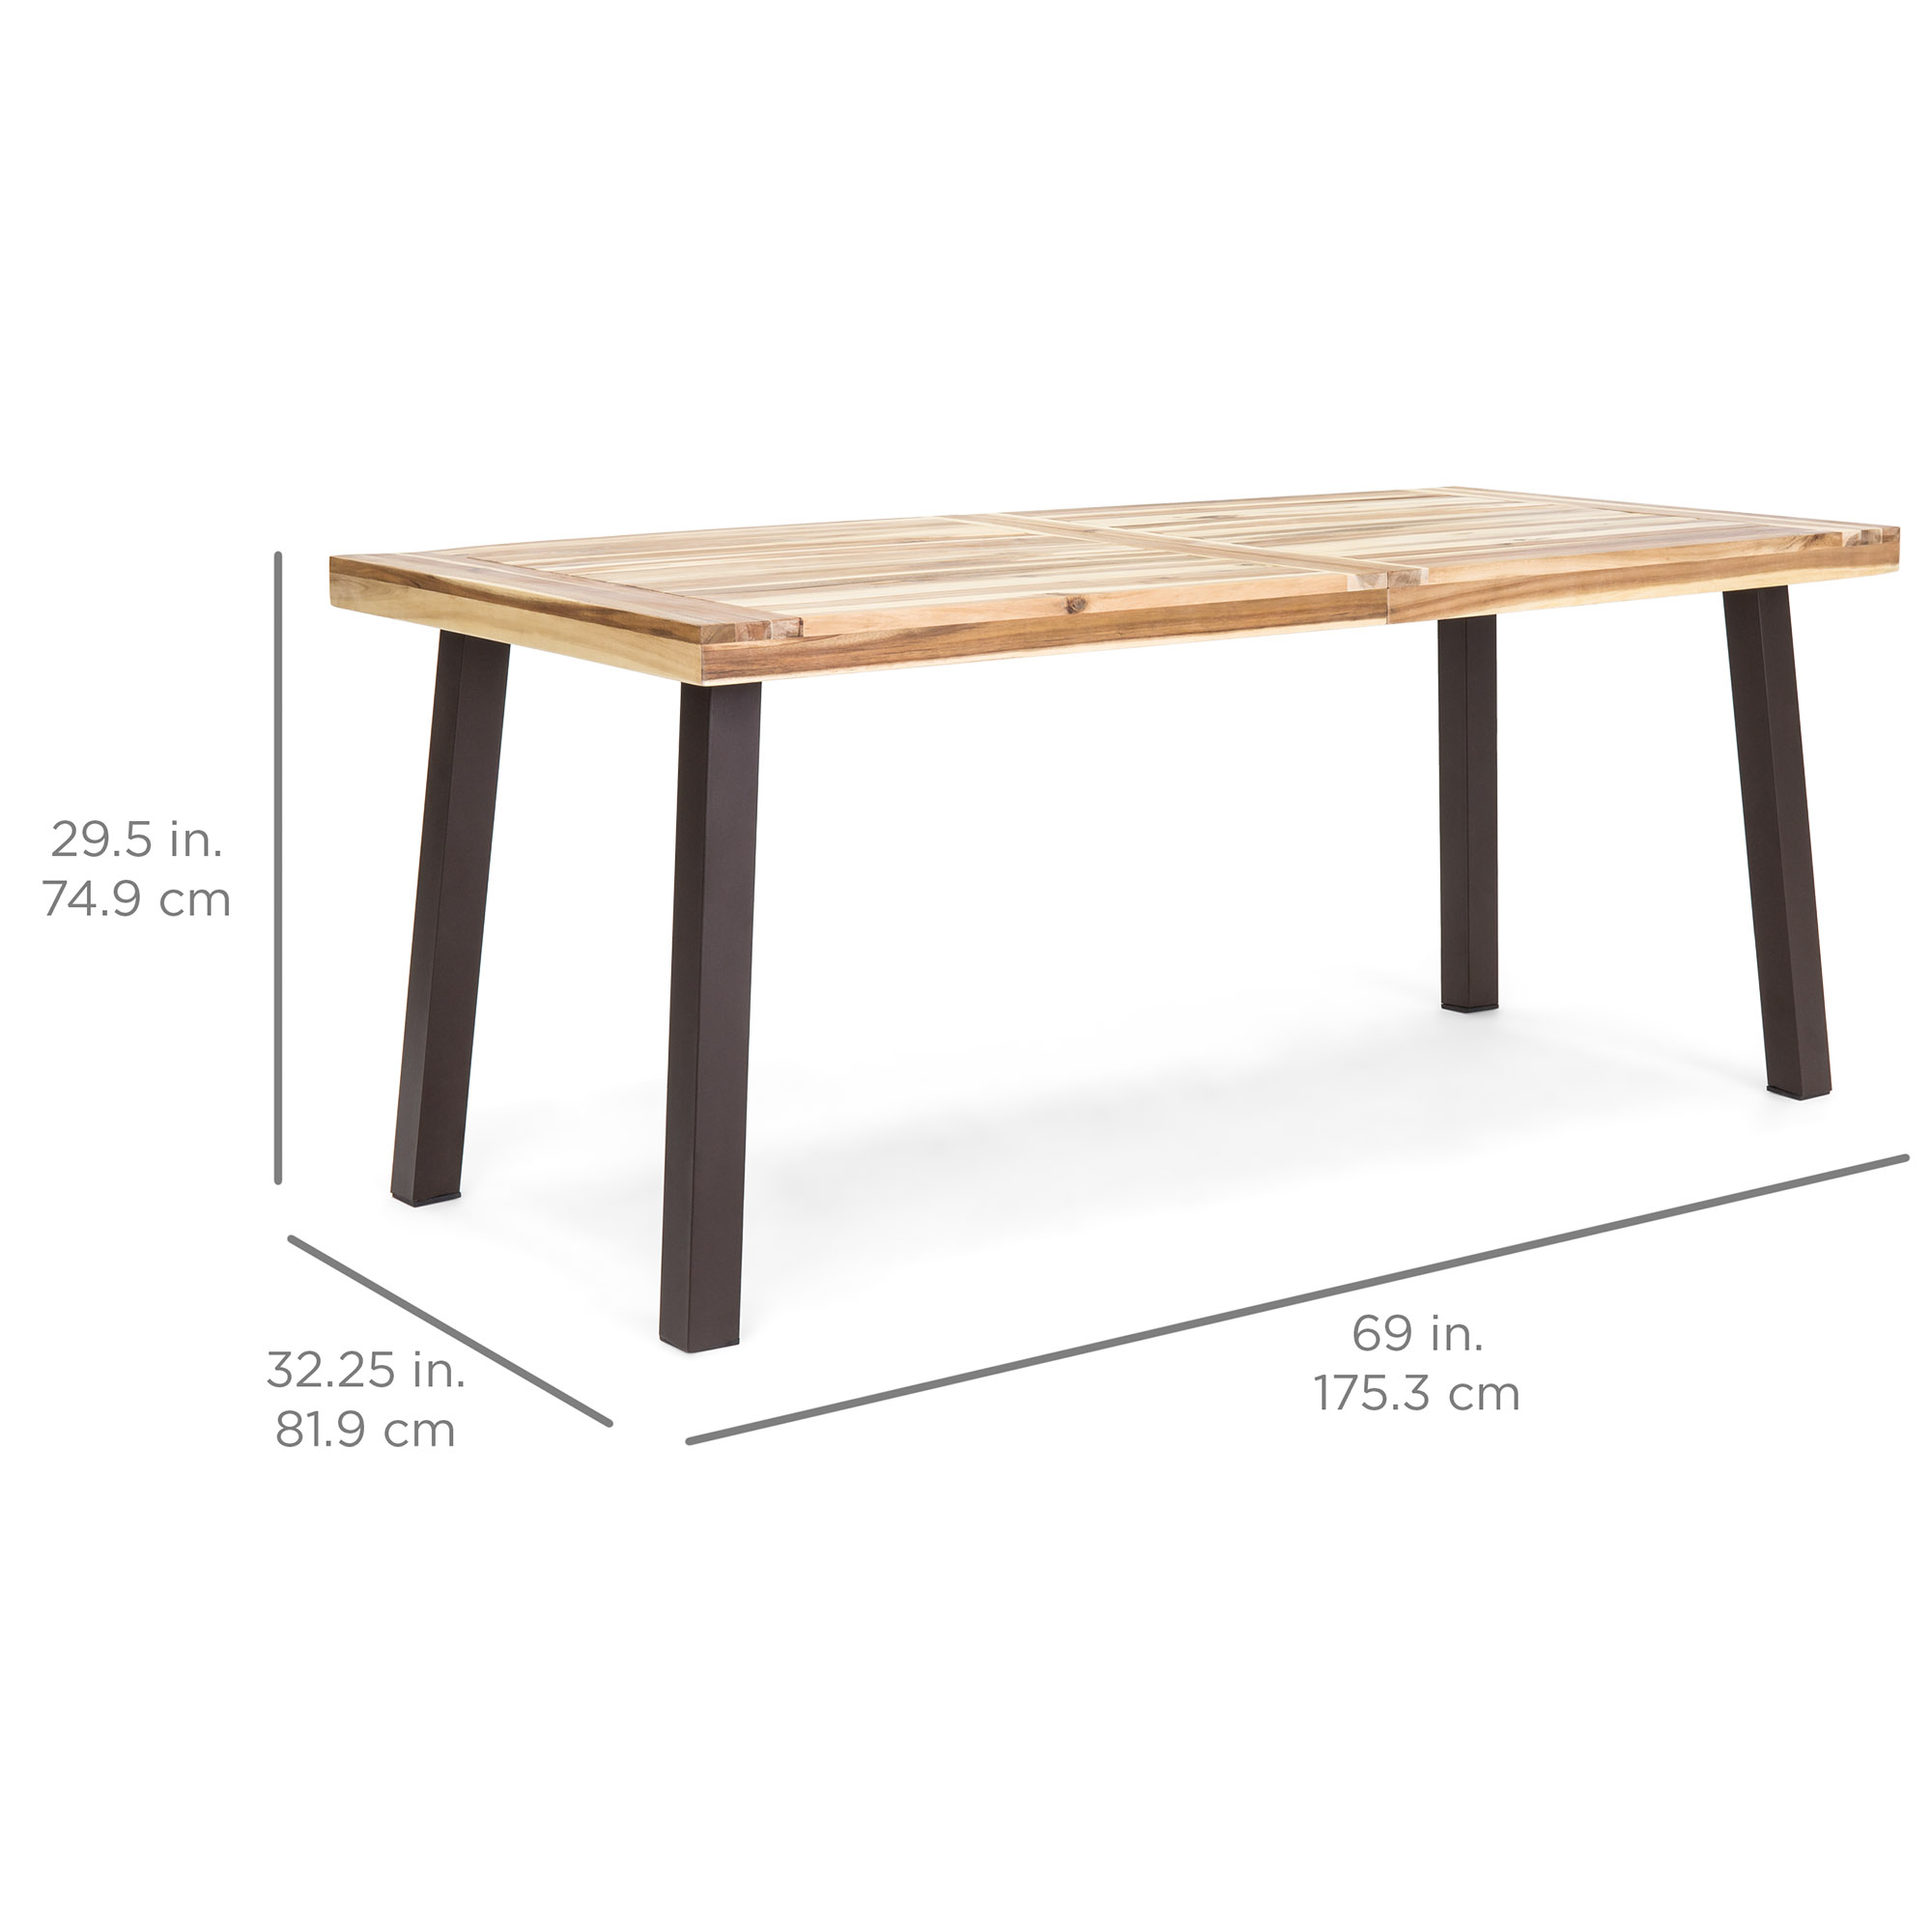 Best Choice Products 6 Person Indoor Outdoor Patio Rustic Acacia Wood Picnic Dining Table W Metal Finish Legs Brown